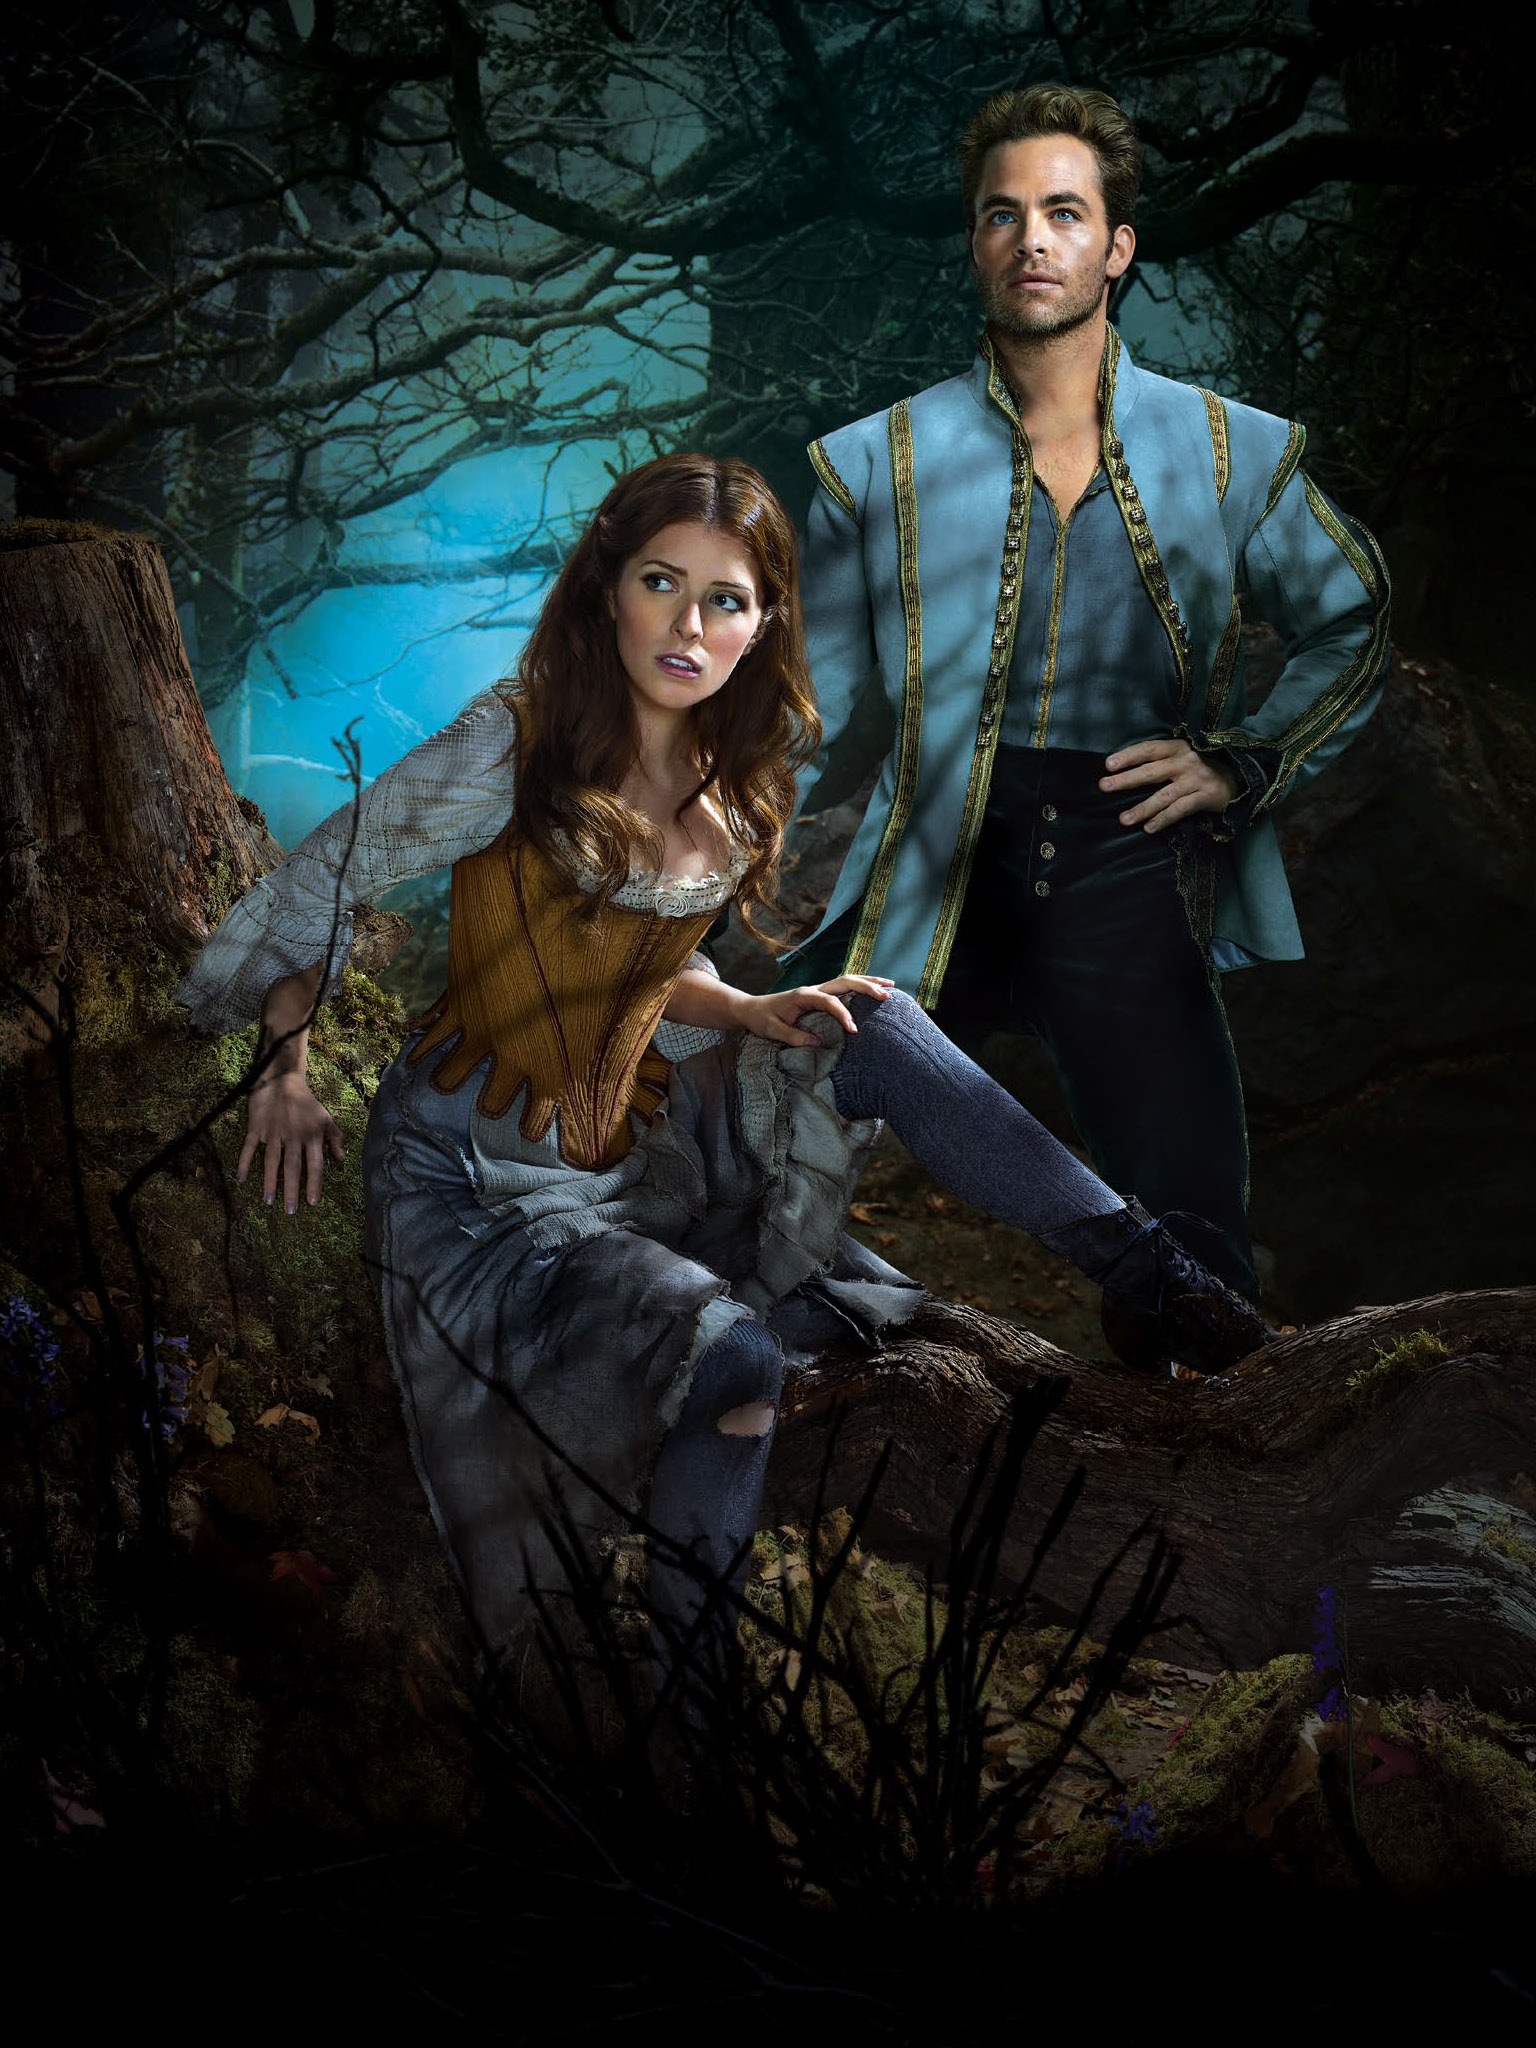 Image Itw-cinderella And